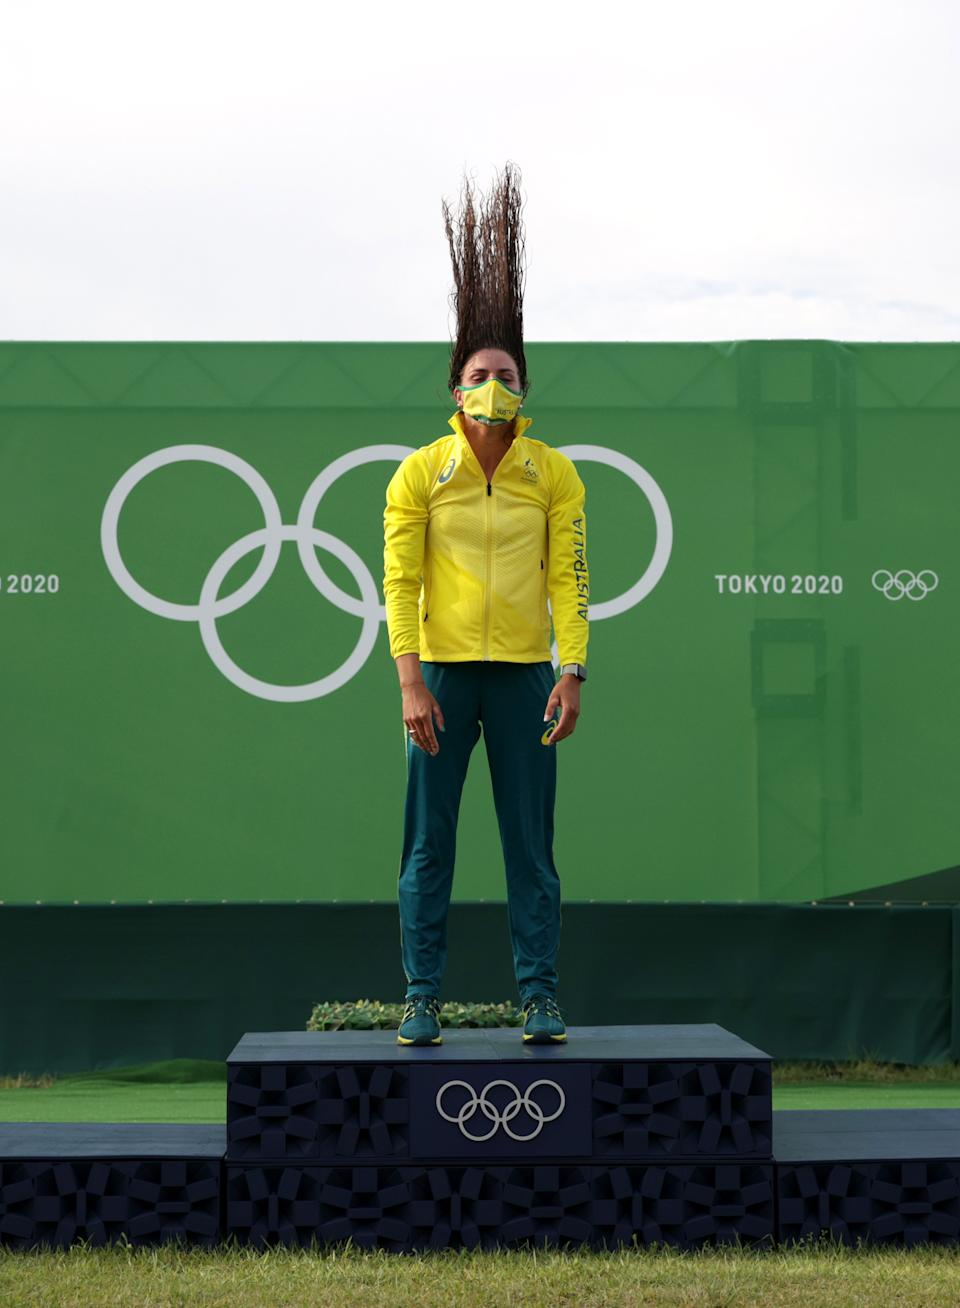 <p>TOKYO, JAPAN - JULY 29: Gold medalist Jessica Fox of Team Australia celebrates during the medal ceremony following the Women's Canoe Slalom Final on day six of the Tokyo 2020 Olympic Games at Kasai Canoe Slalom Centre on July 29, 2021 in Tokyo, Japan. (Photo by Adam Pretty/Getty Images)</p>